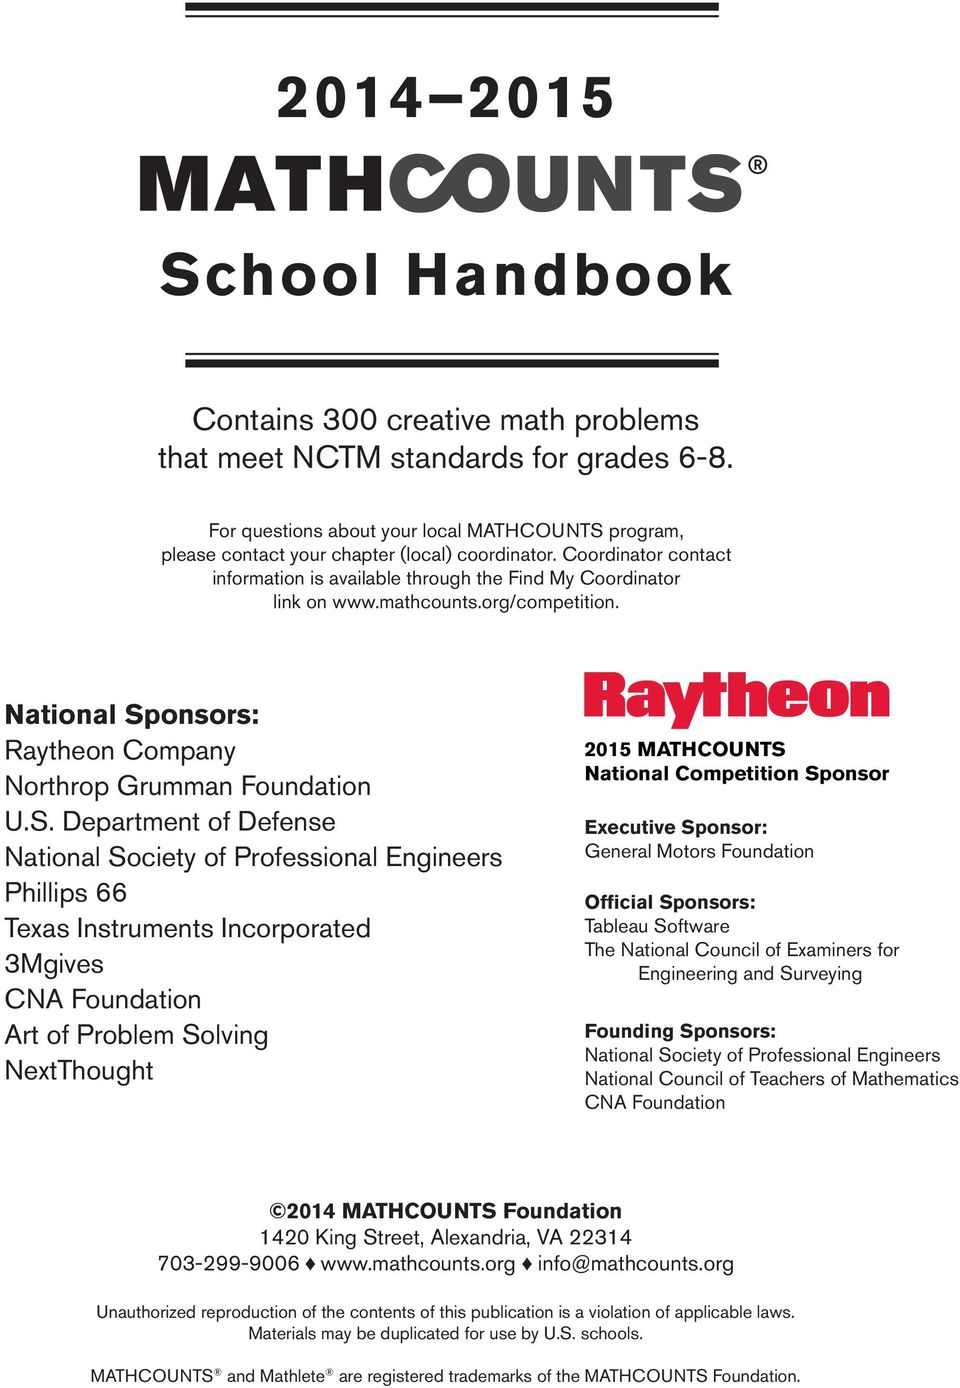 2o14 2o15 school handbook pdf orgcompetition national sp fandeluxe Images